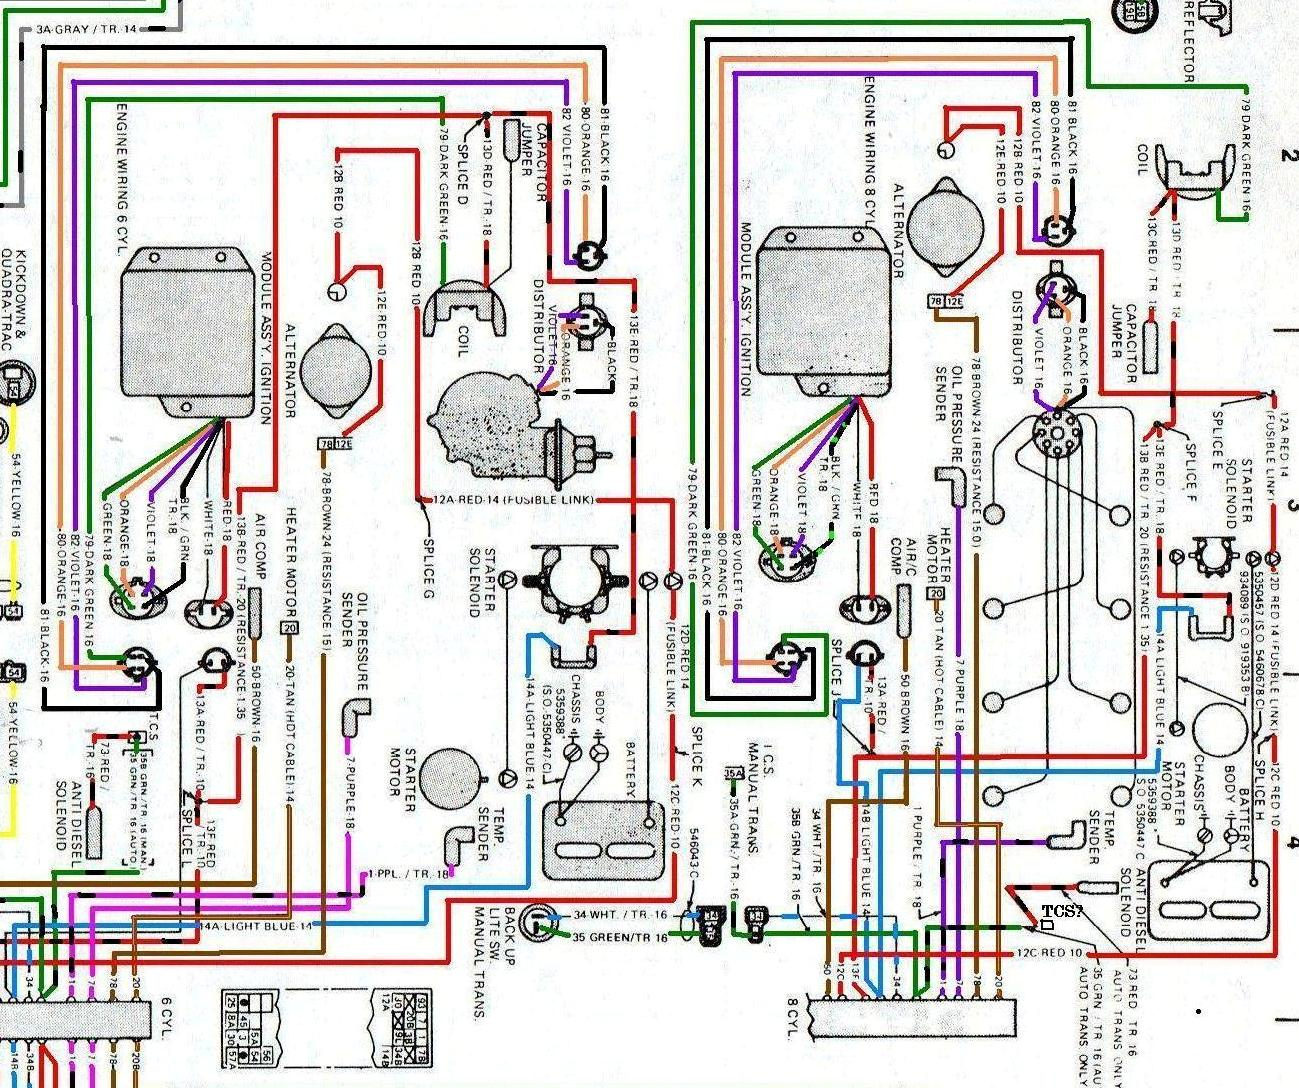 87 honda crx stereo wiring diagram 87 300zx wiring diagram 1986 nissan 300zx wiring diagram 1990 300zx wiring diagram [ 1299 x 1088 Pixel ]